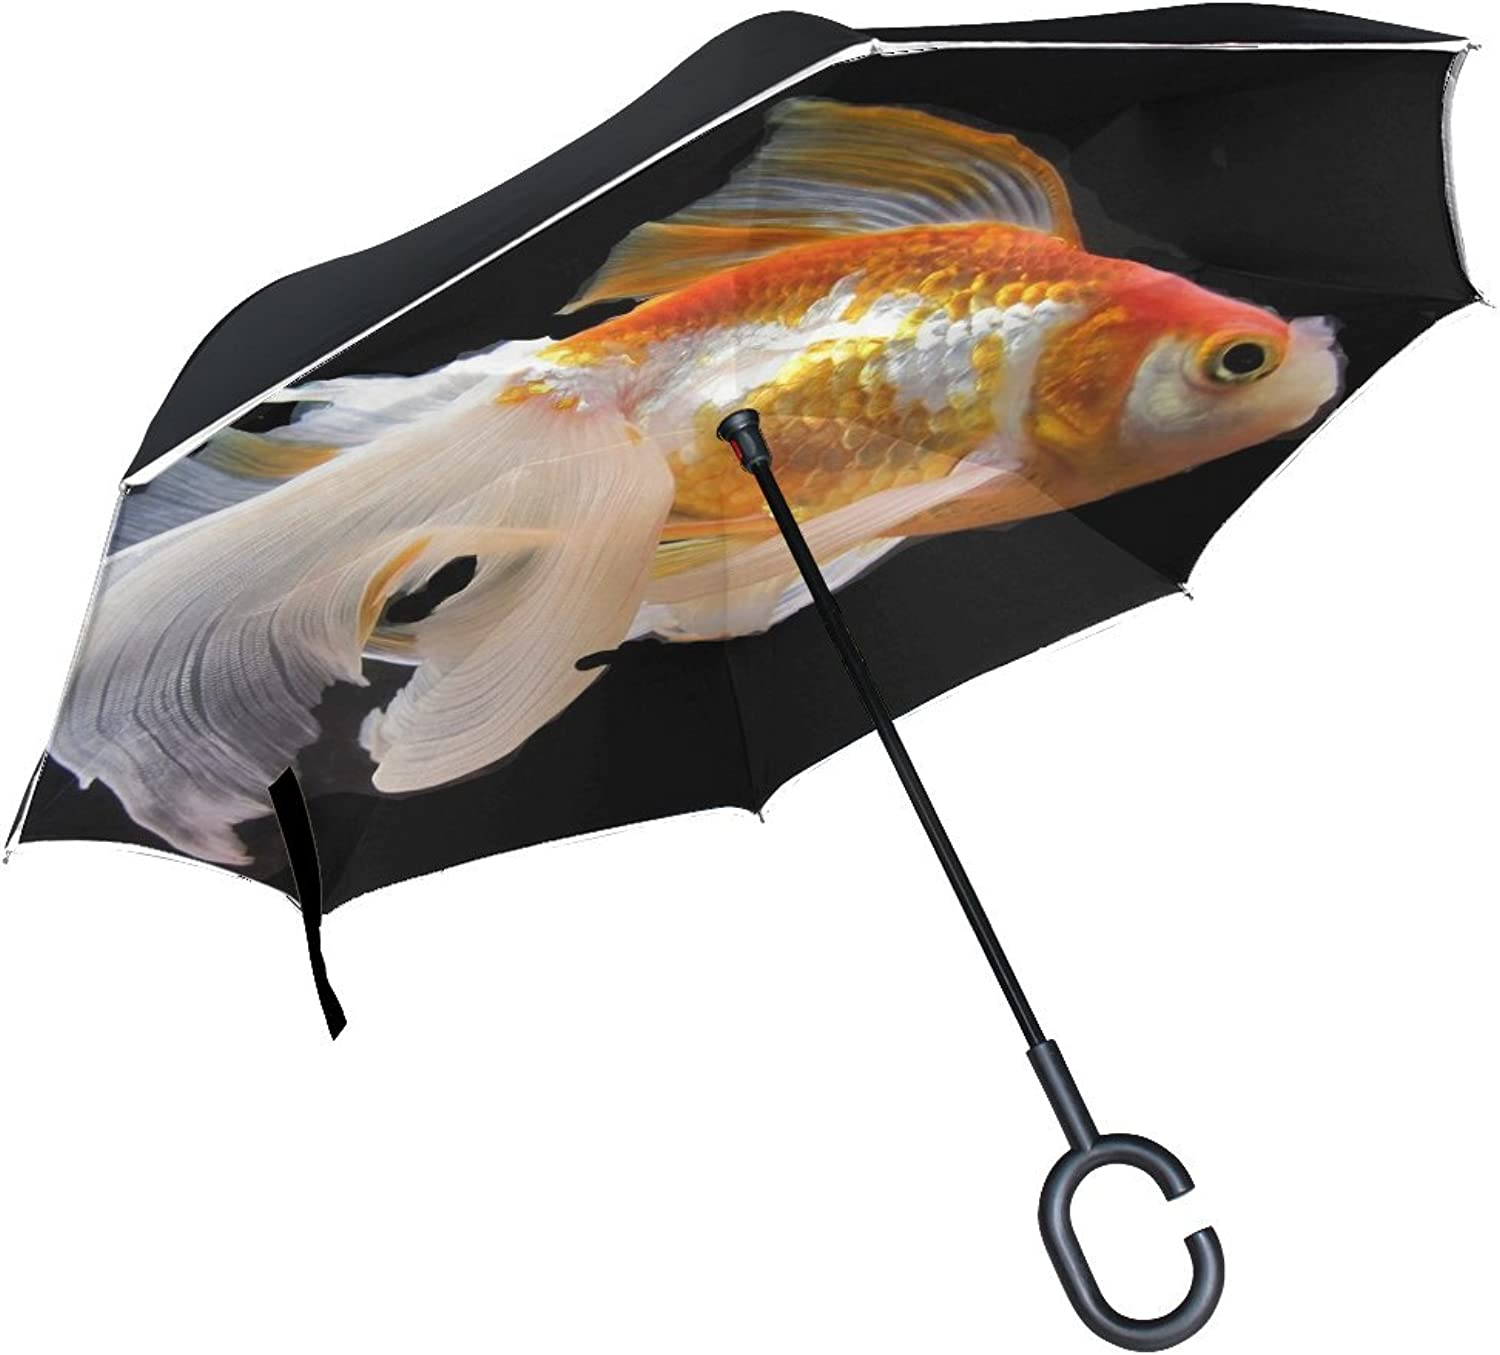 Animal Fish Fantail goldfish Adorable Black Water Classic Cutebaby Pretty Ingreened Umbrella Large Double Layer Outdoor Rain Sun Car Reversible Umbrella